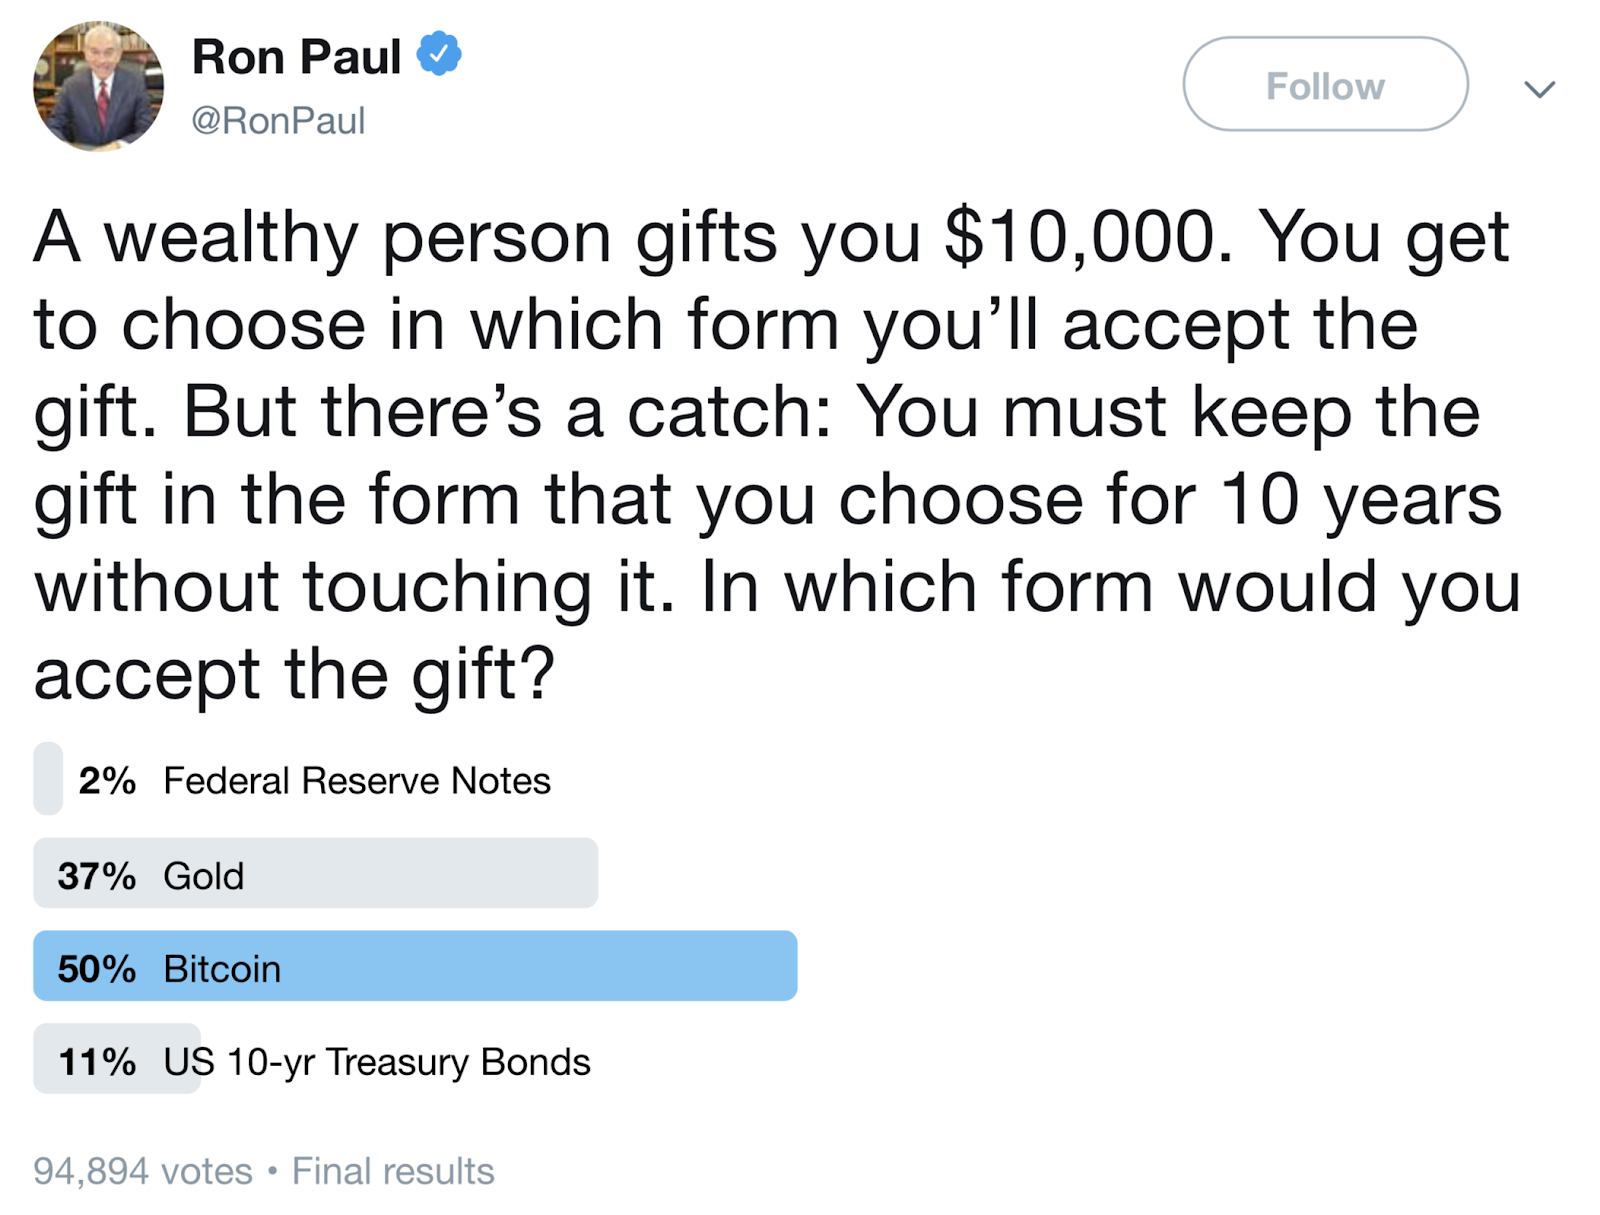 Screenshot of Ron Paul's Nov. 14, 2018 tweet